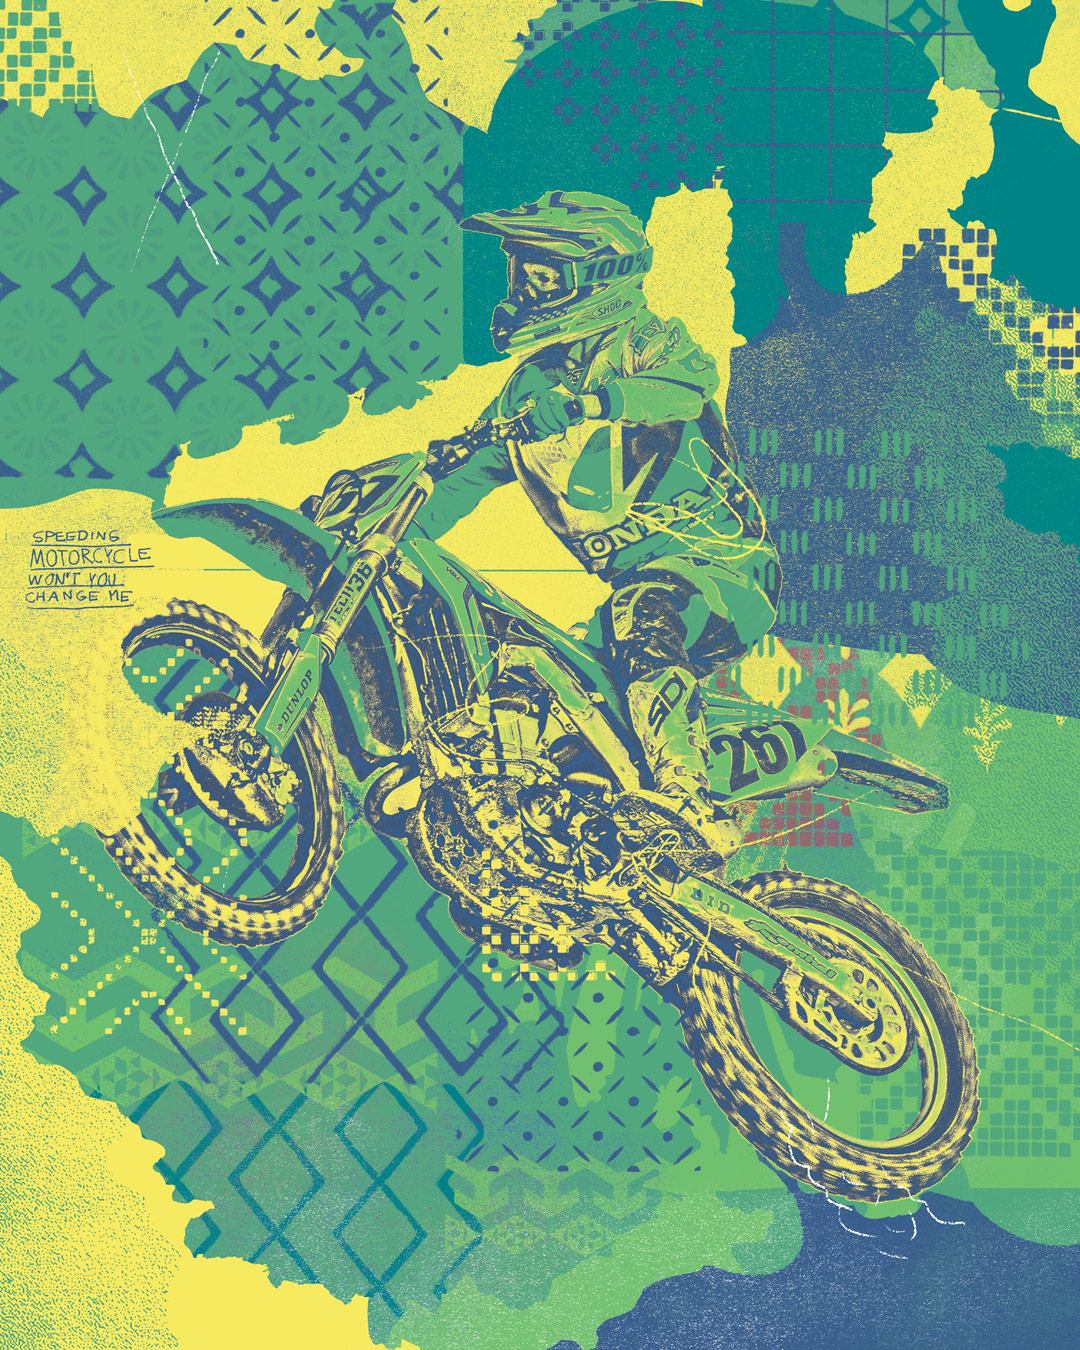 Max-o-matic: Freestyle: Motorbikes